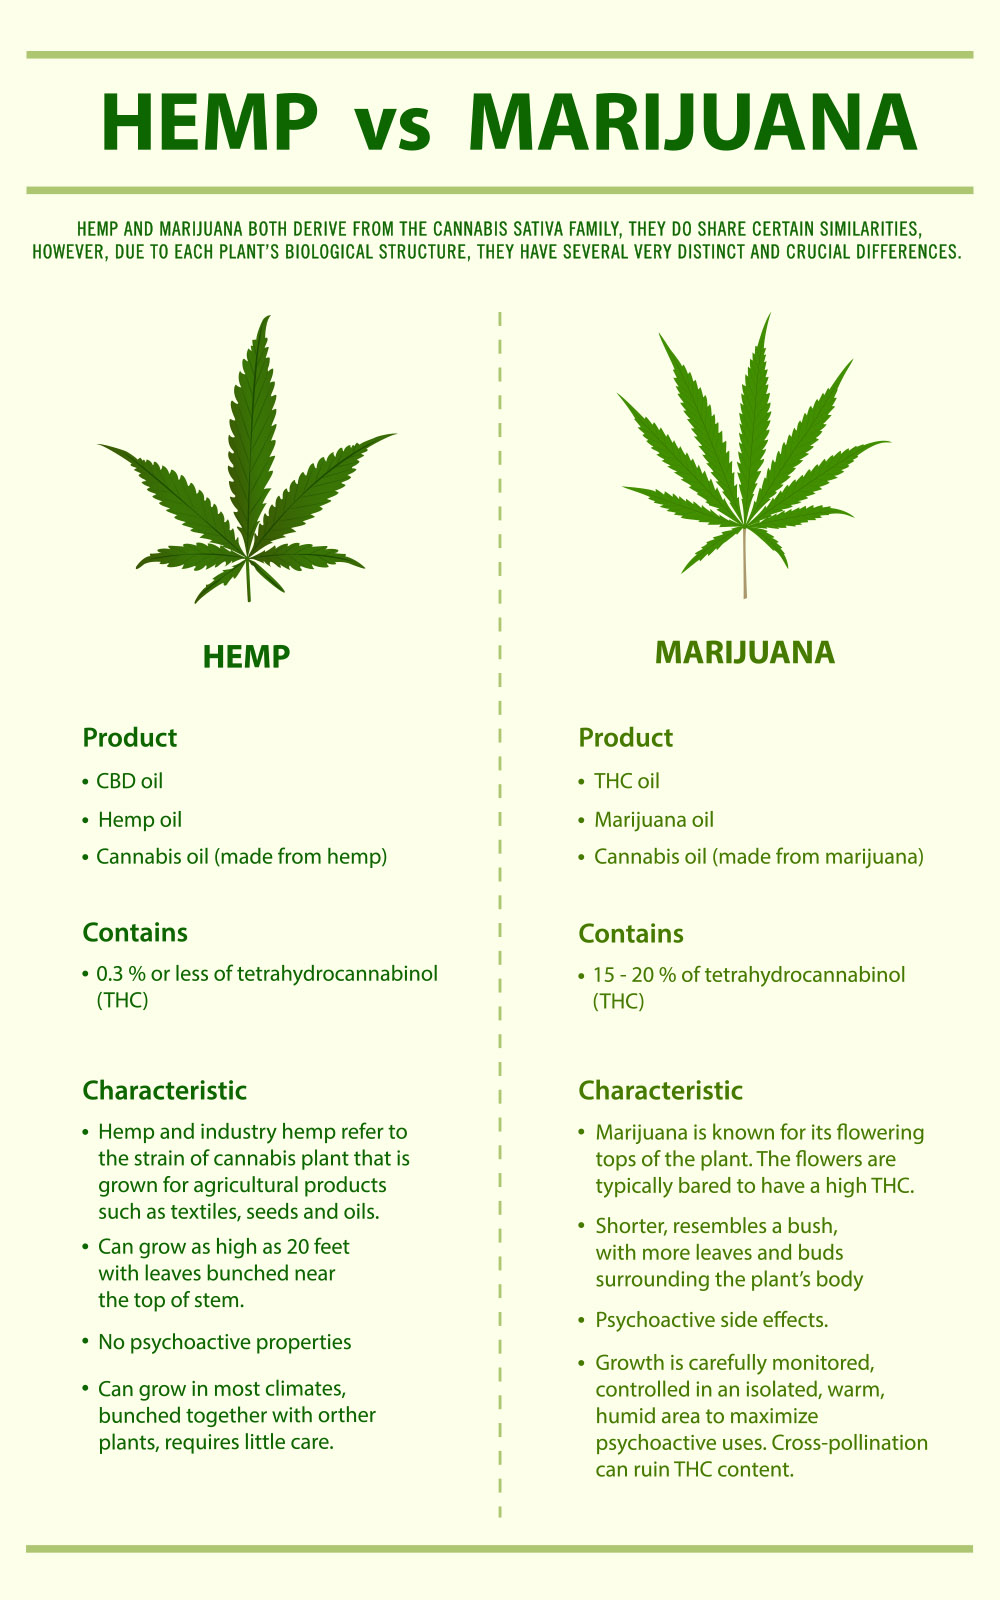 Hemp vs Marijuana vertical infographic, healthcare and medical illustration about cannabis